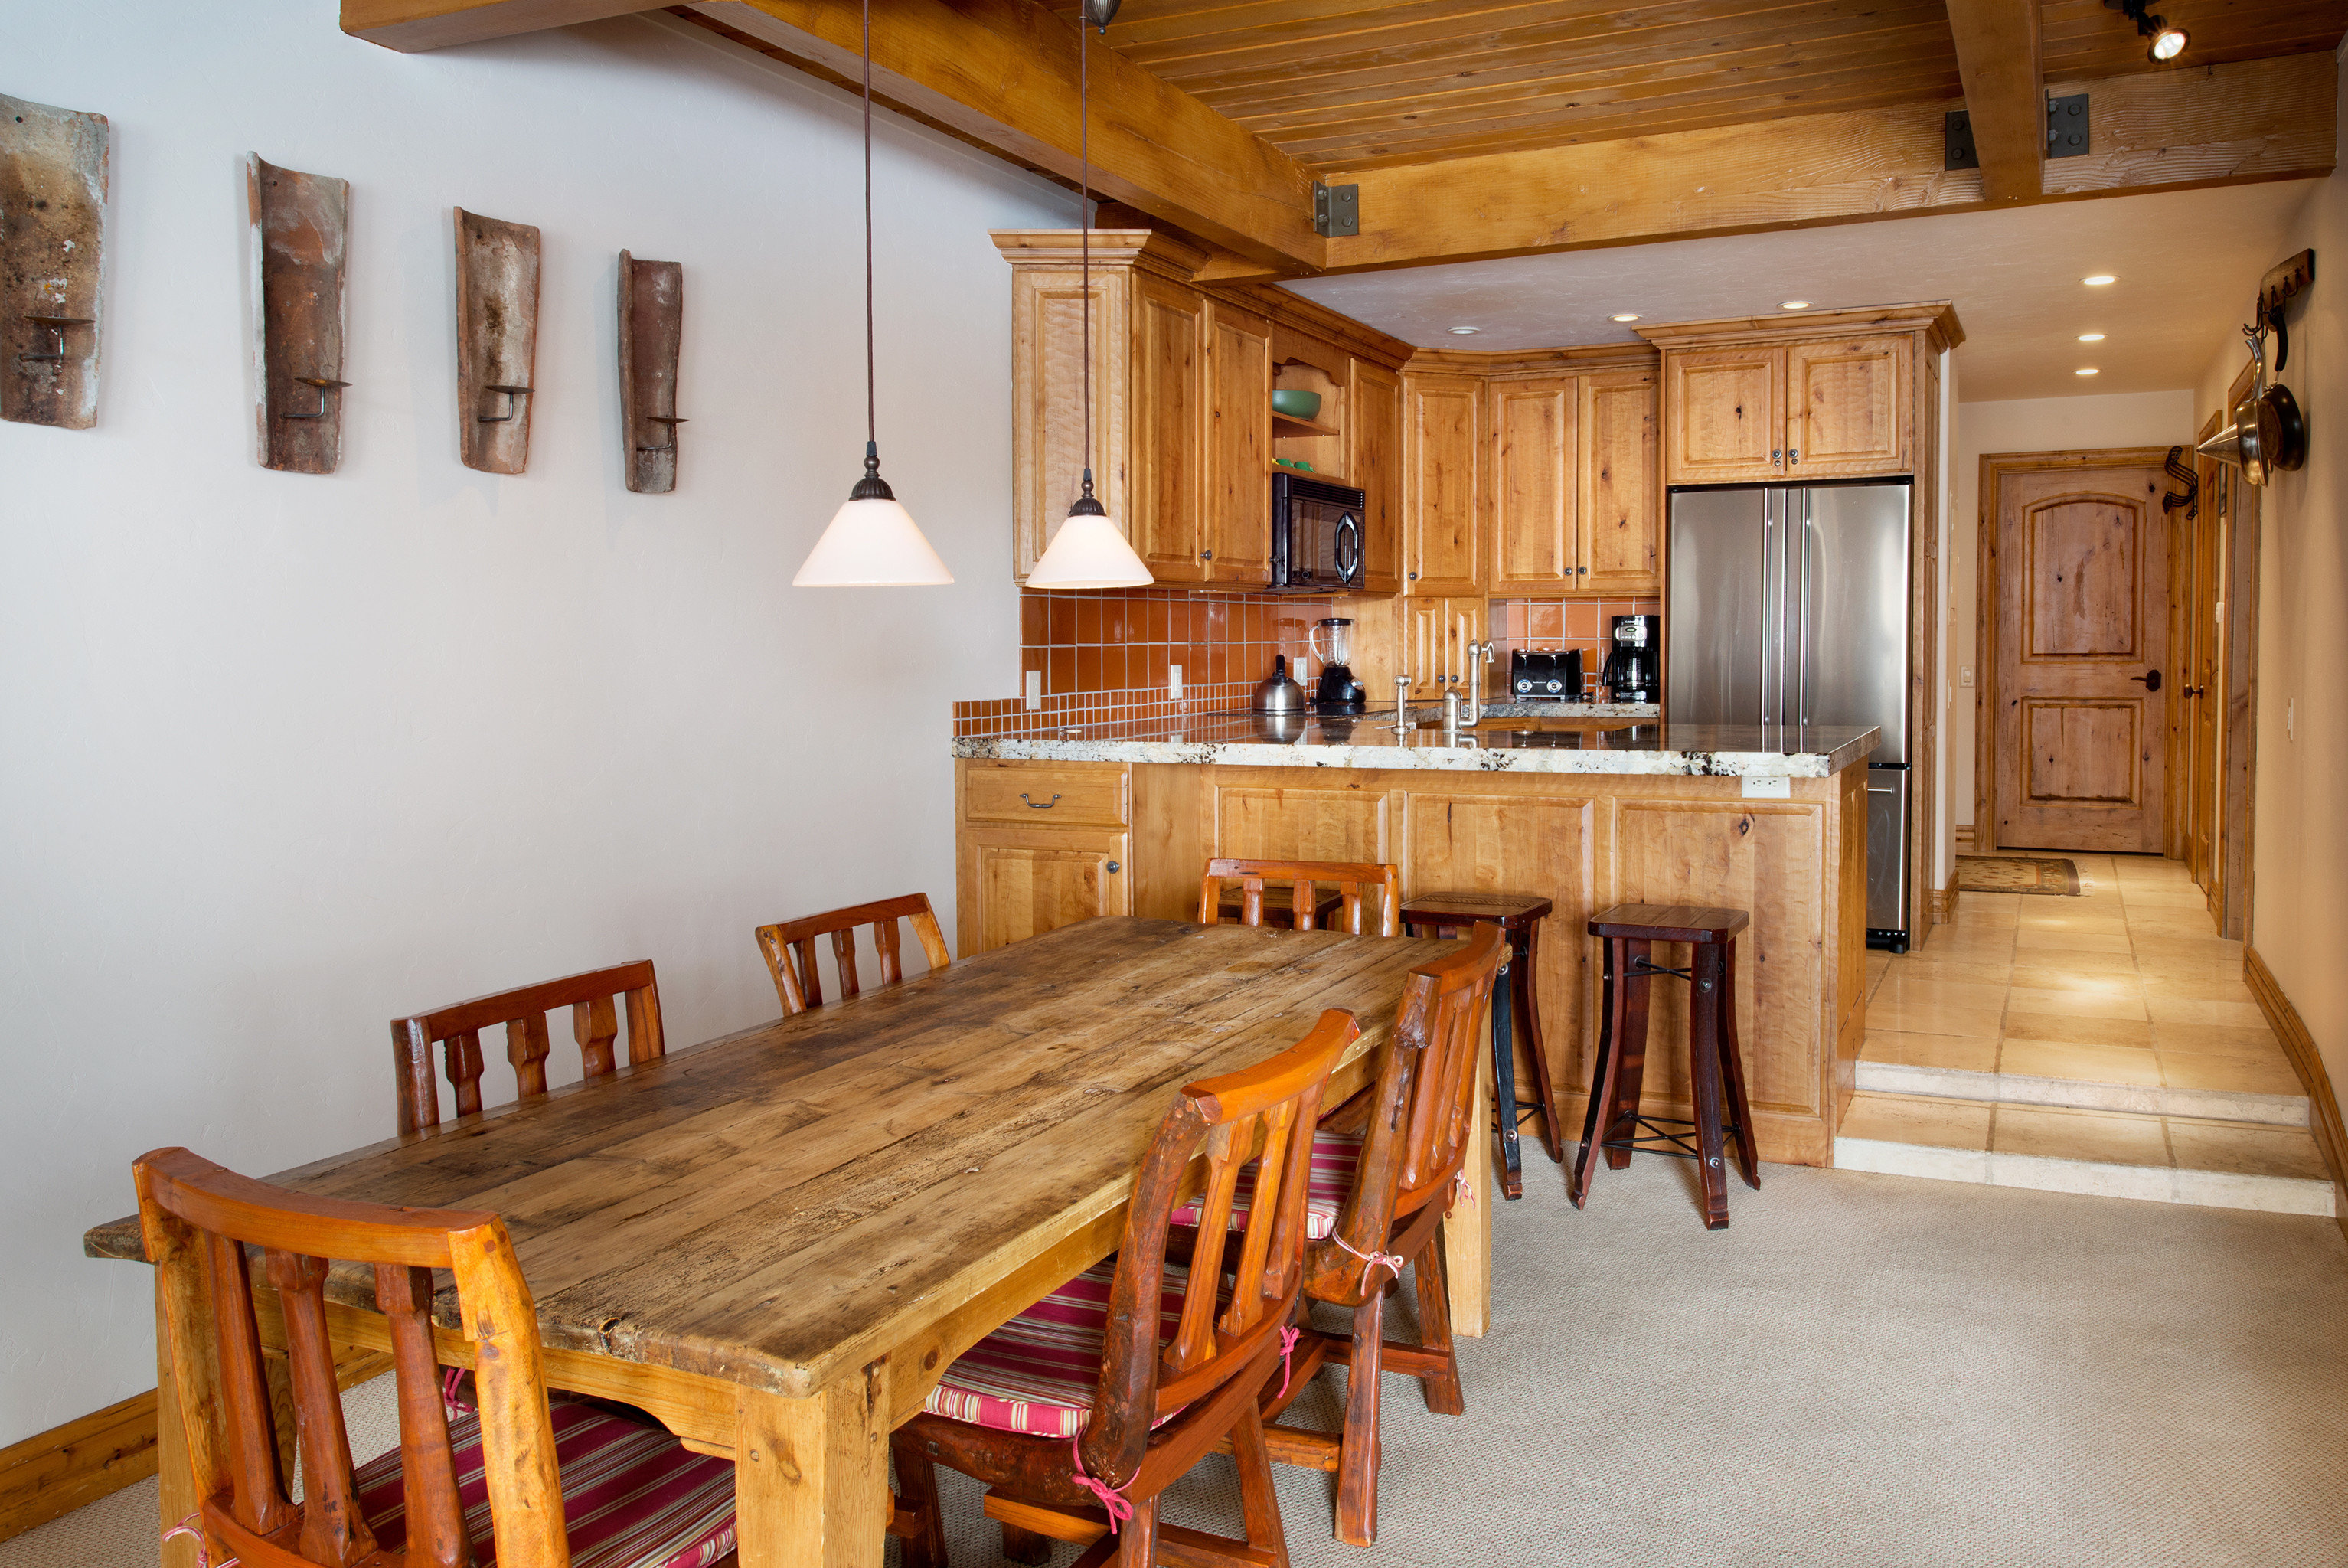 Kitchen Rustic wooden property home hardwood cottage farmhouse log cabin Dining Villa recreation room living room dining table